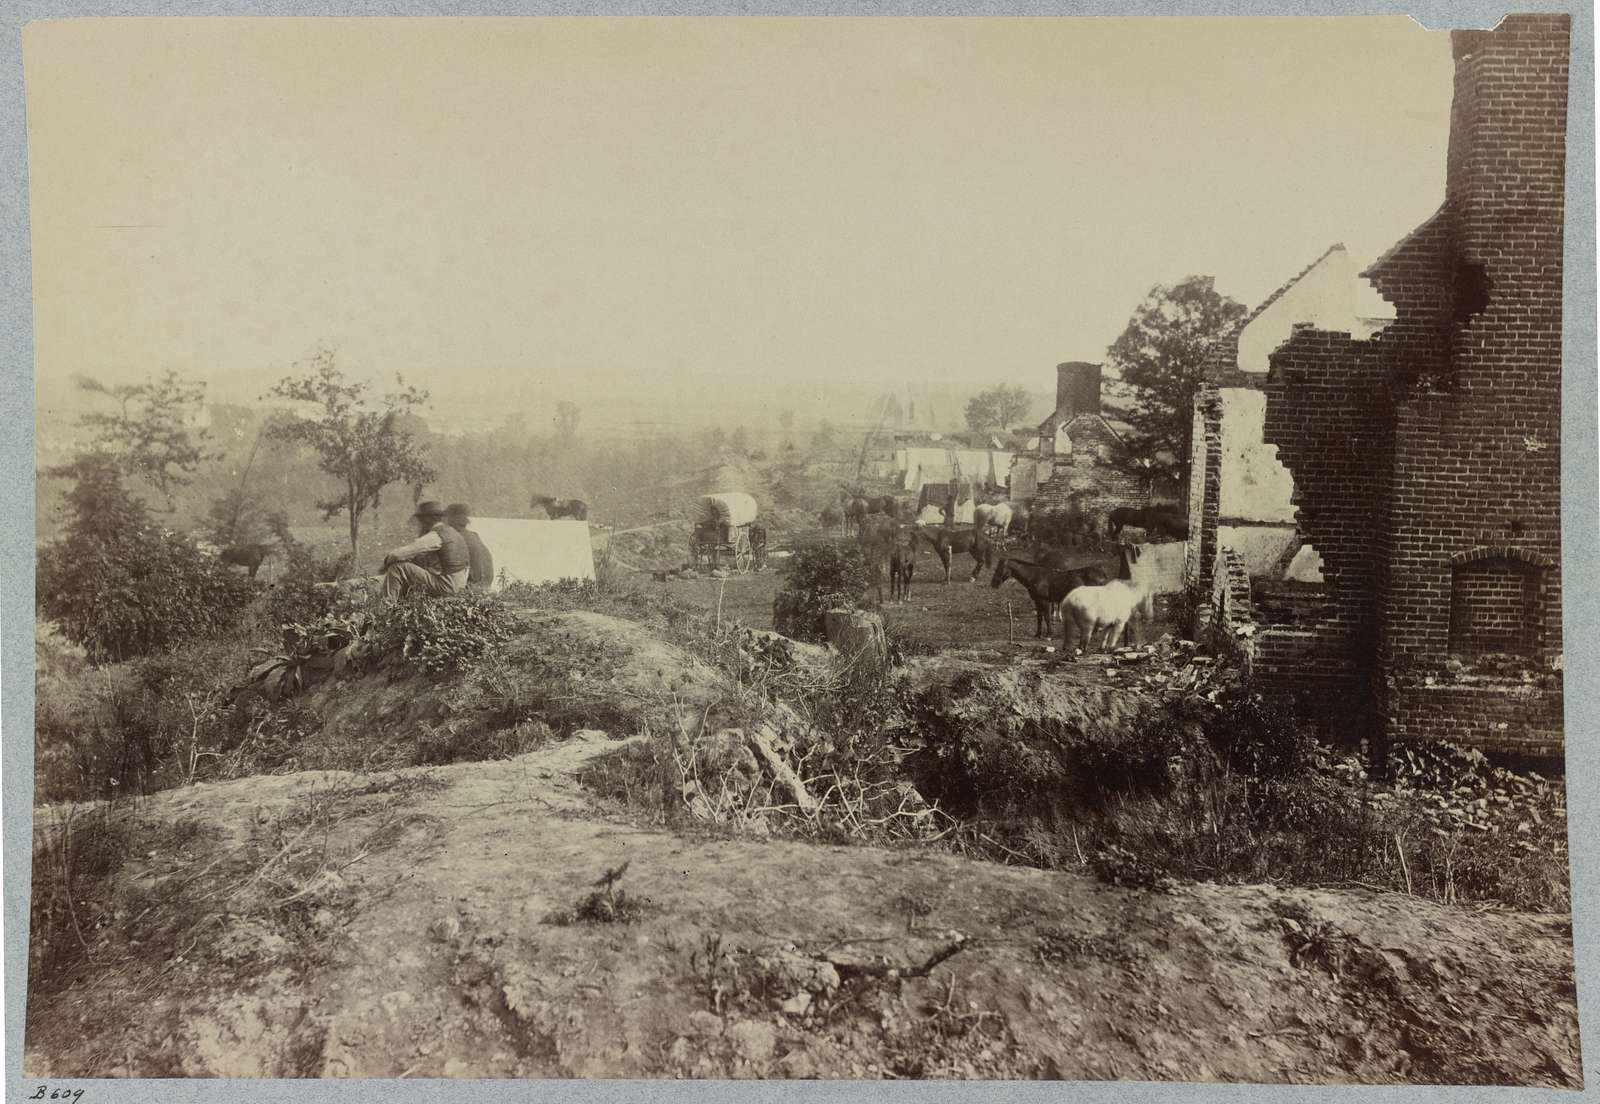 Marye's Heights, Fredericksburg, Va., Confederate fortifications